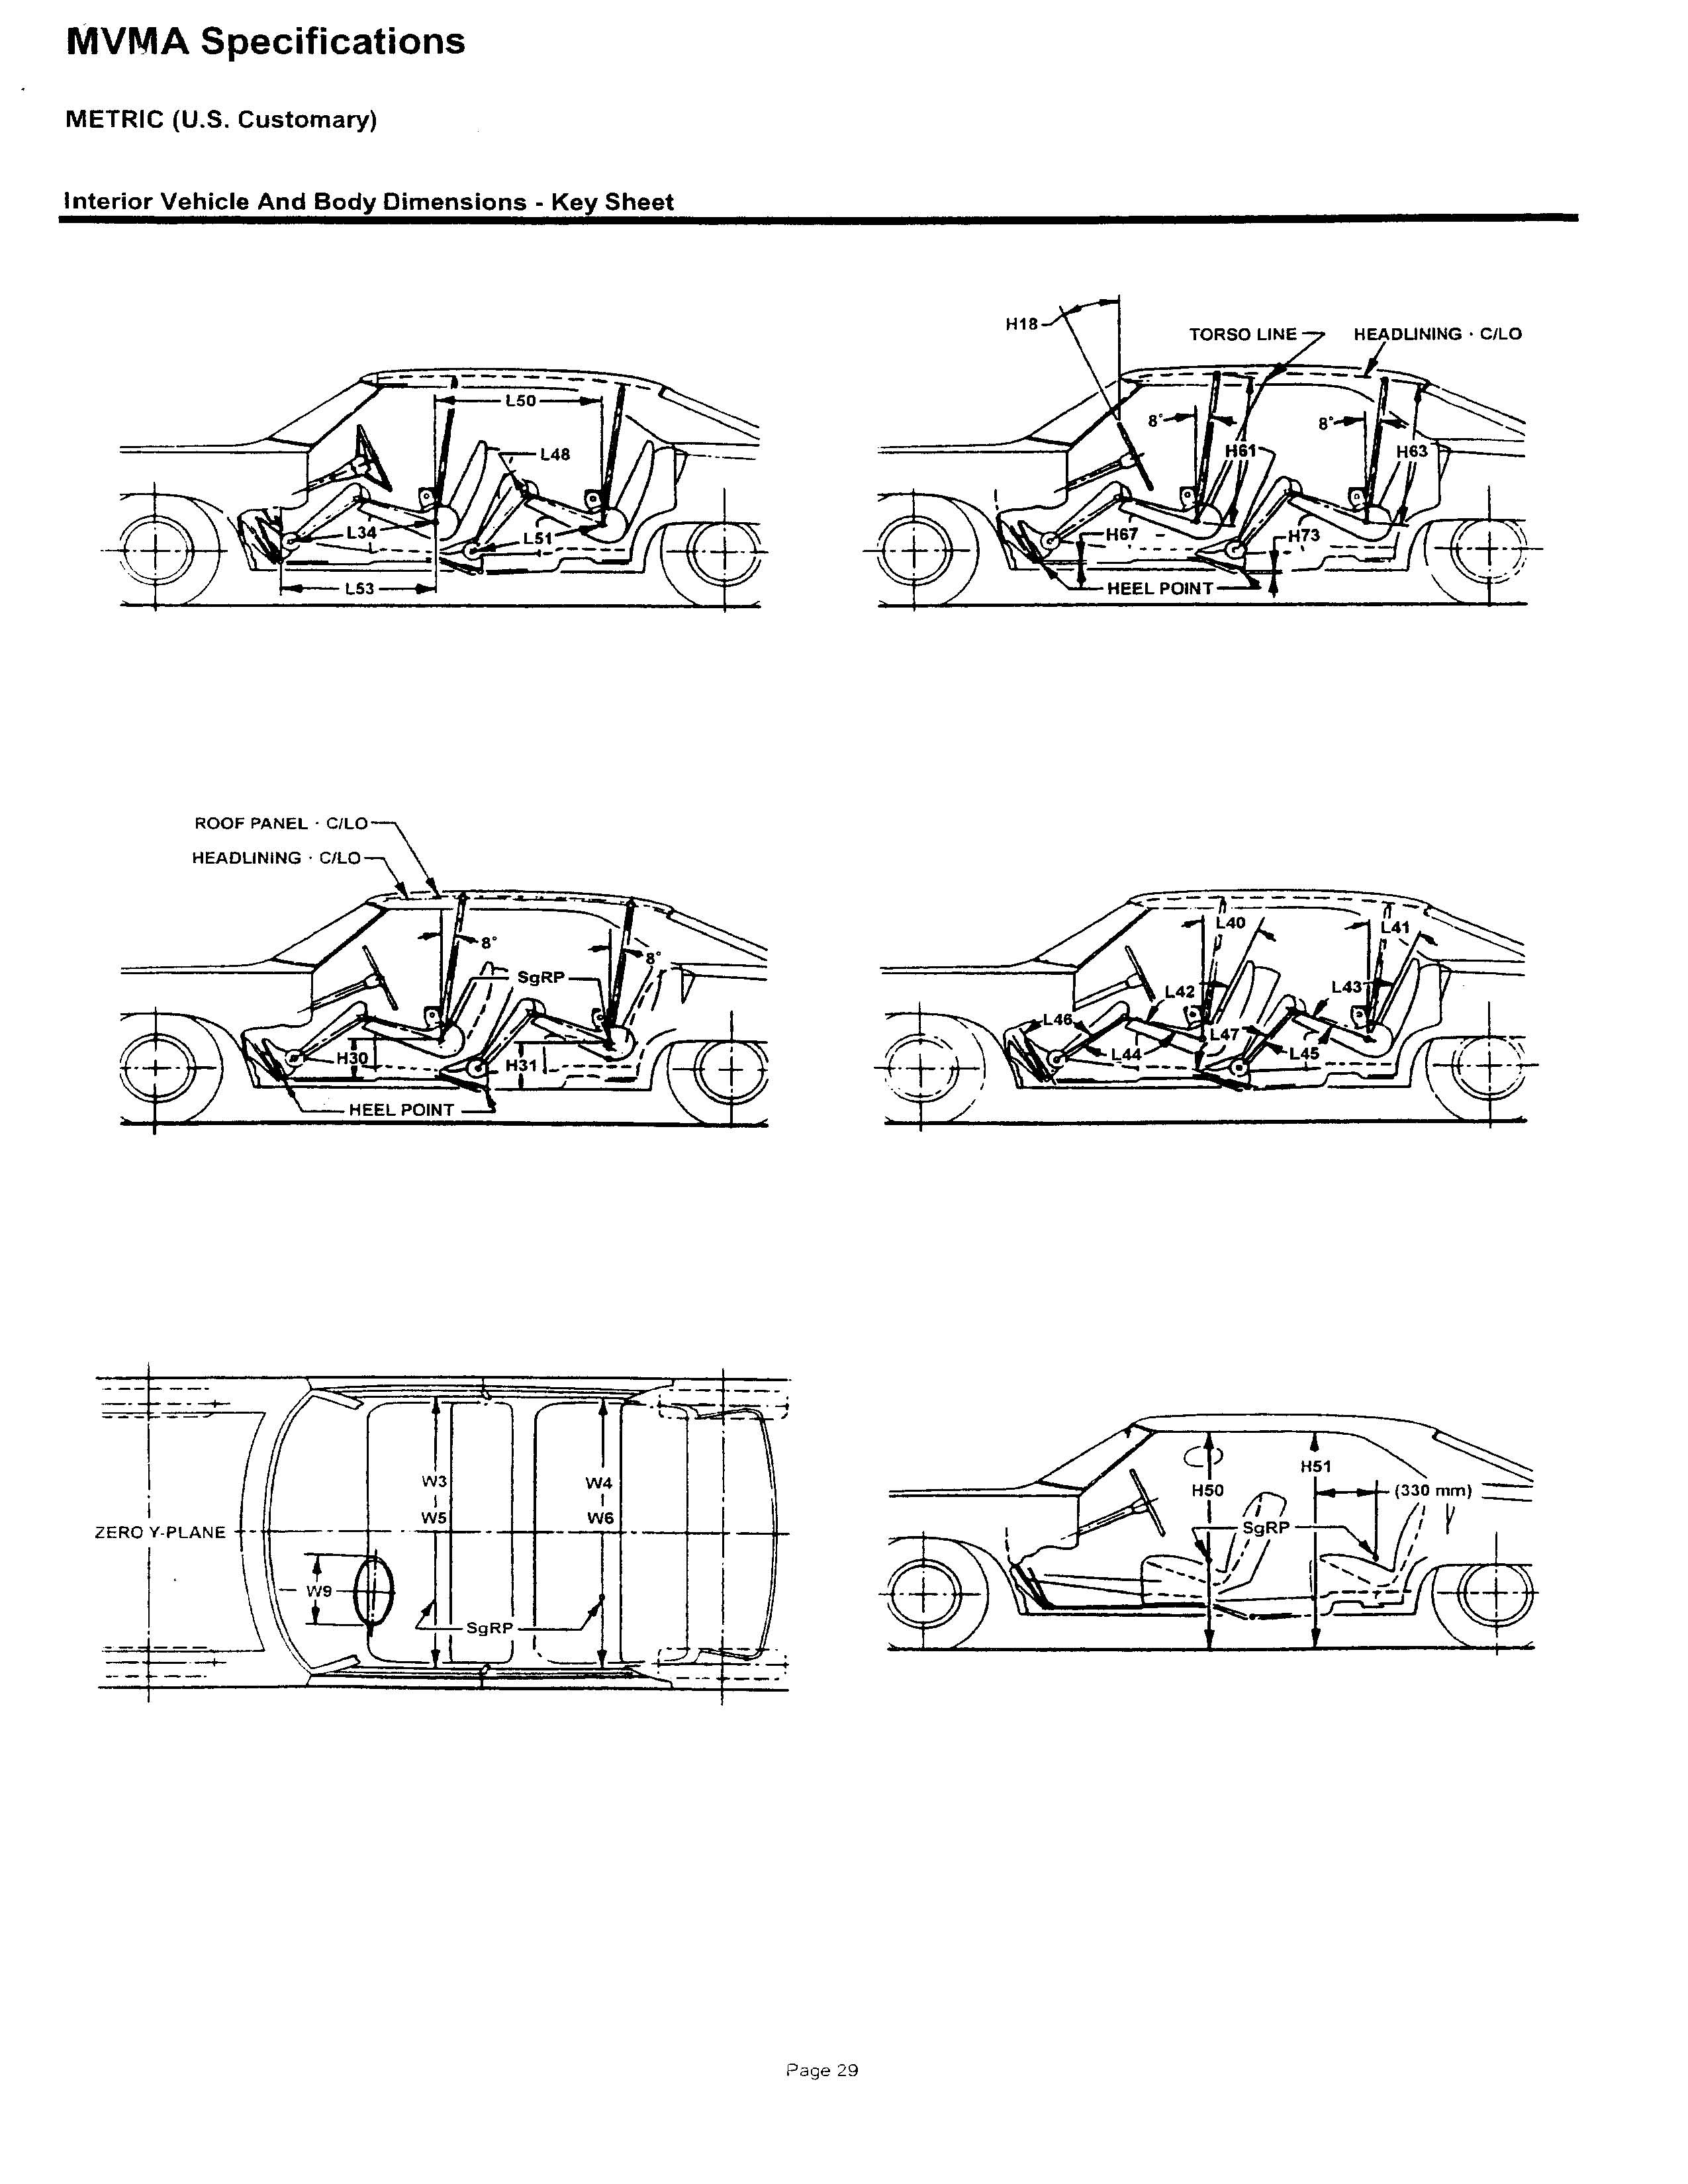 Manufacturers Motor Vehicles Specifications Mvma Mmvs Examples